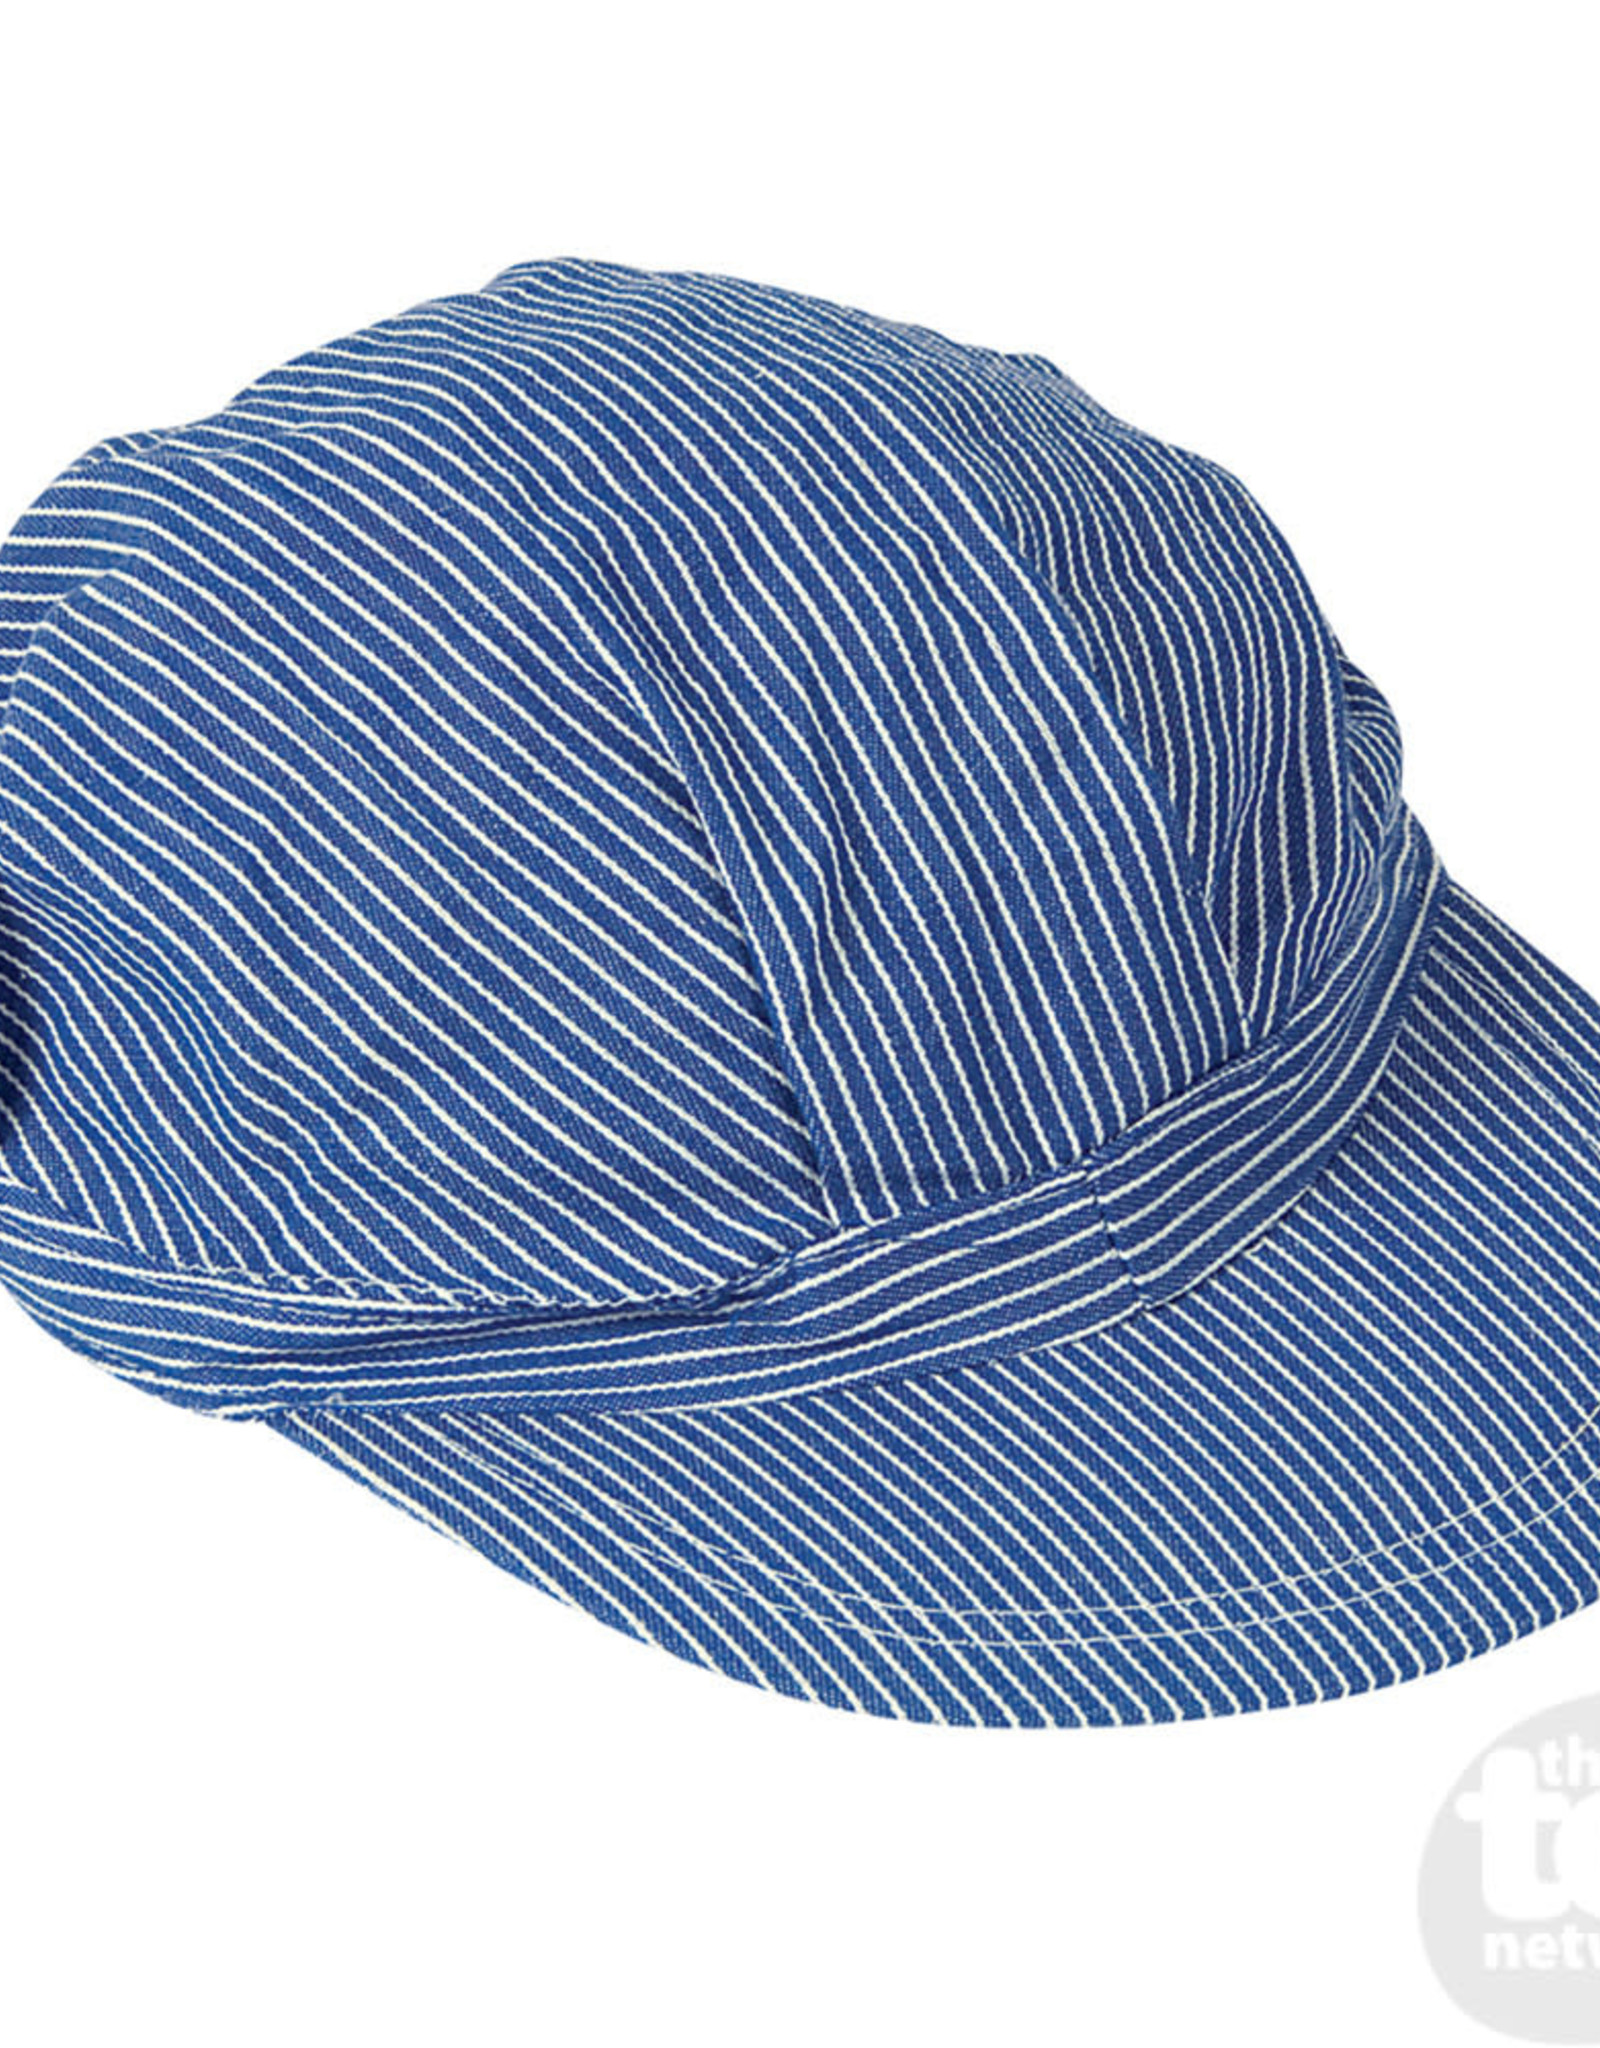 The Toy Network Child Size Blue Engineer Cap